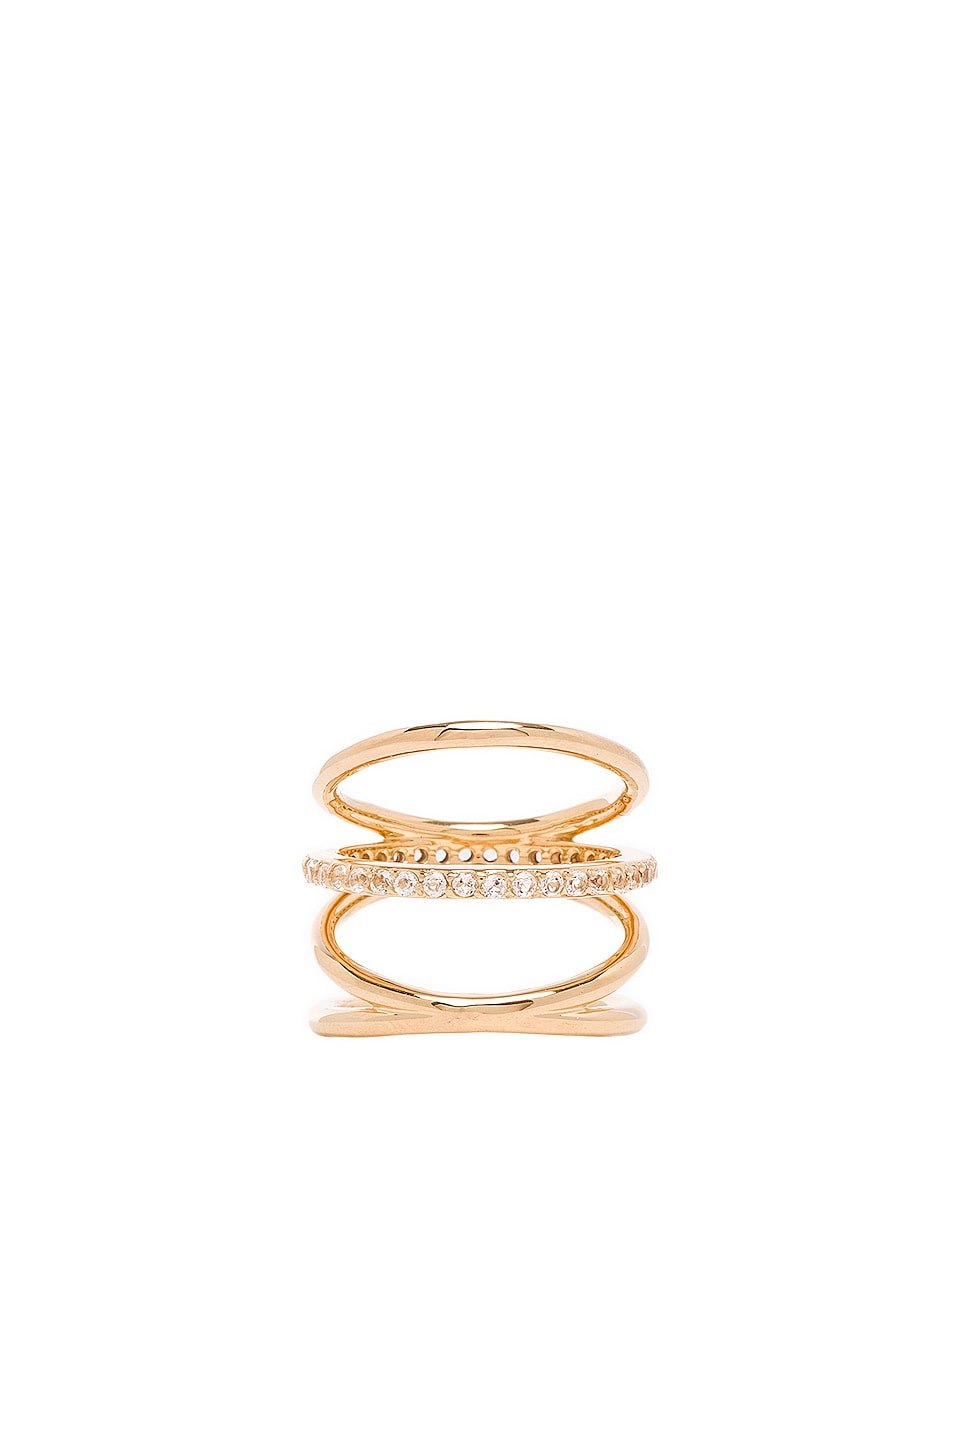 Elizabeth and James Mondrian Ring in Gold